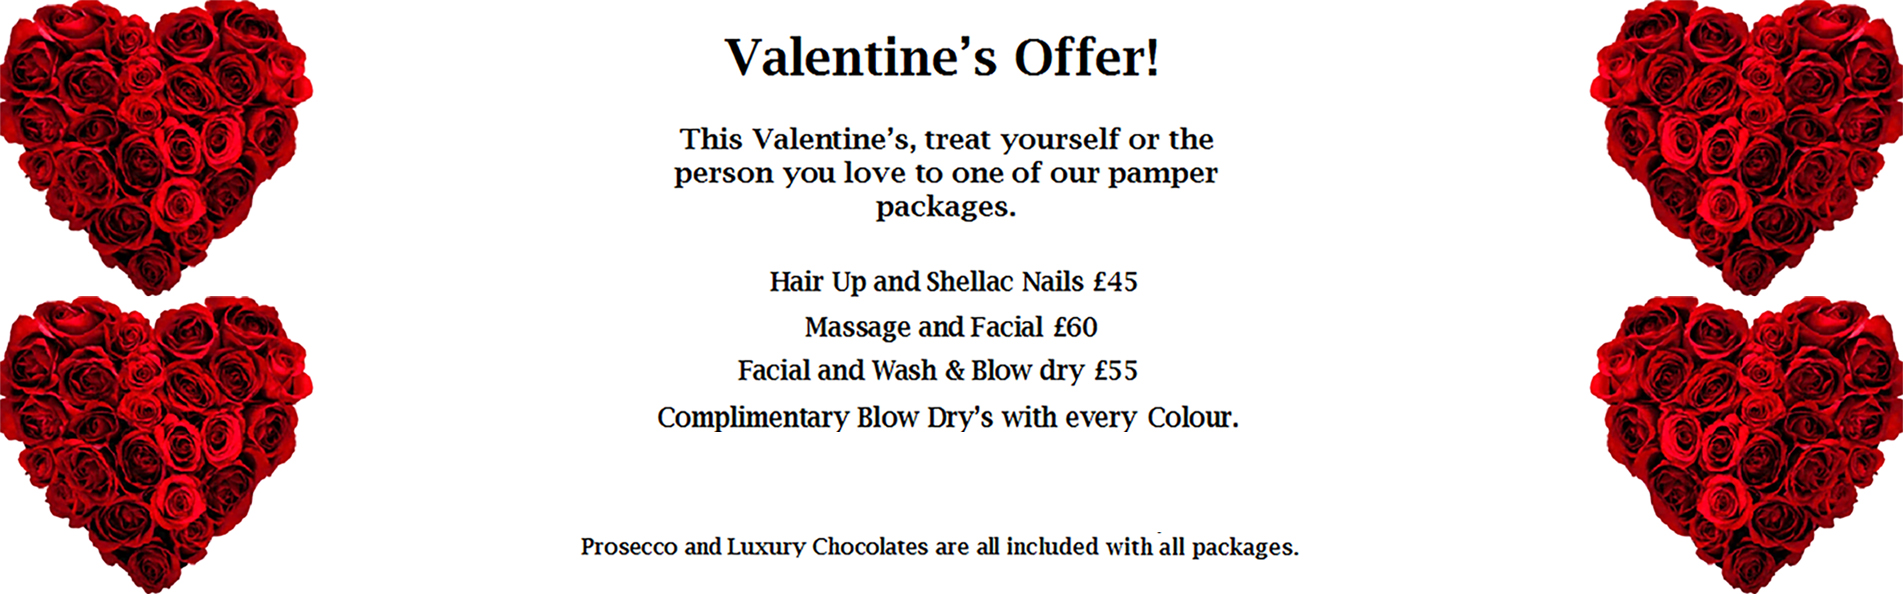 Valentine's Offer at Blake & Butler